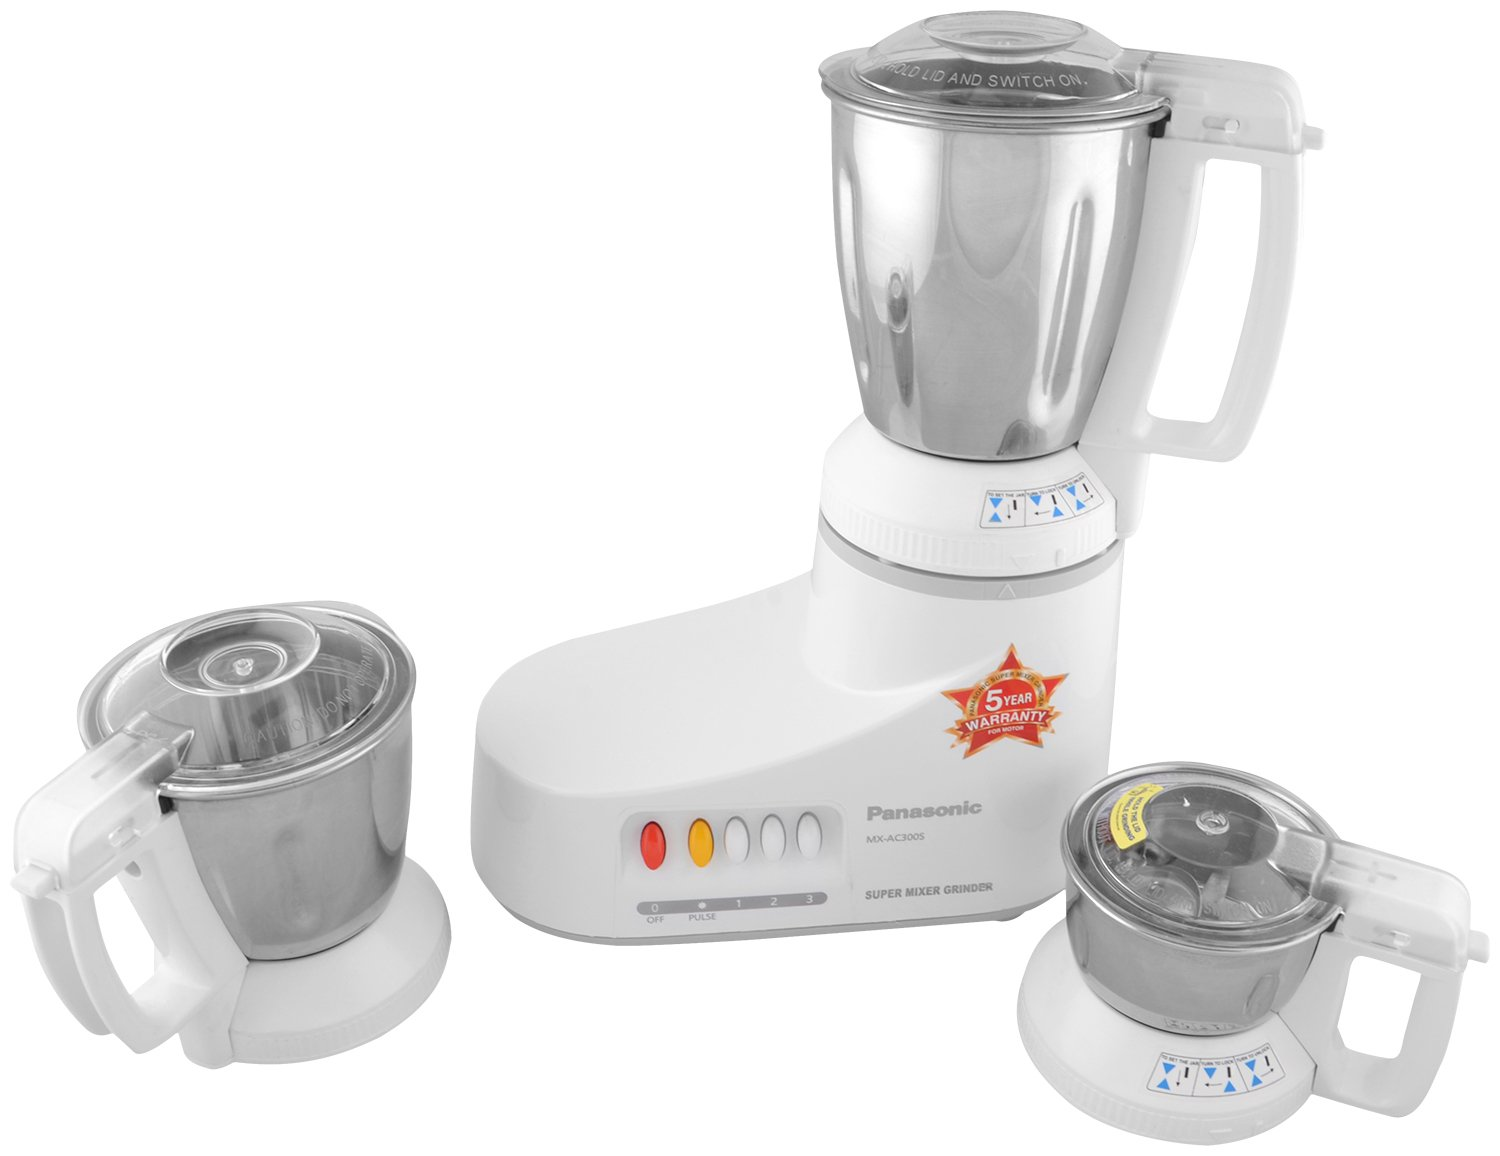 Buy Panasonic Mx Ac300s H 550 Watt 3 Jar Super Mixer Grinder Grey Wiring Devices Philippines Online At Low Prices In India